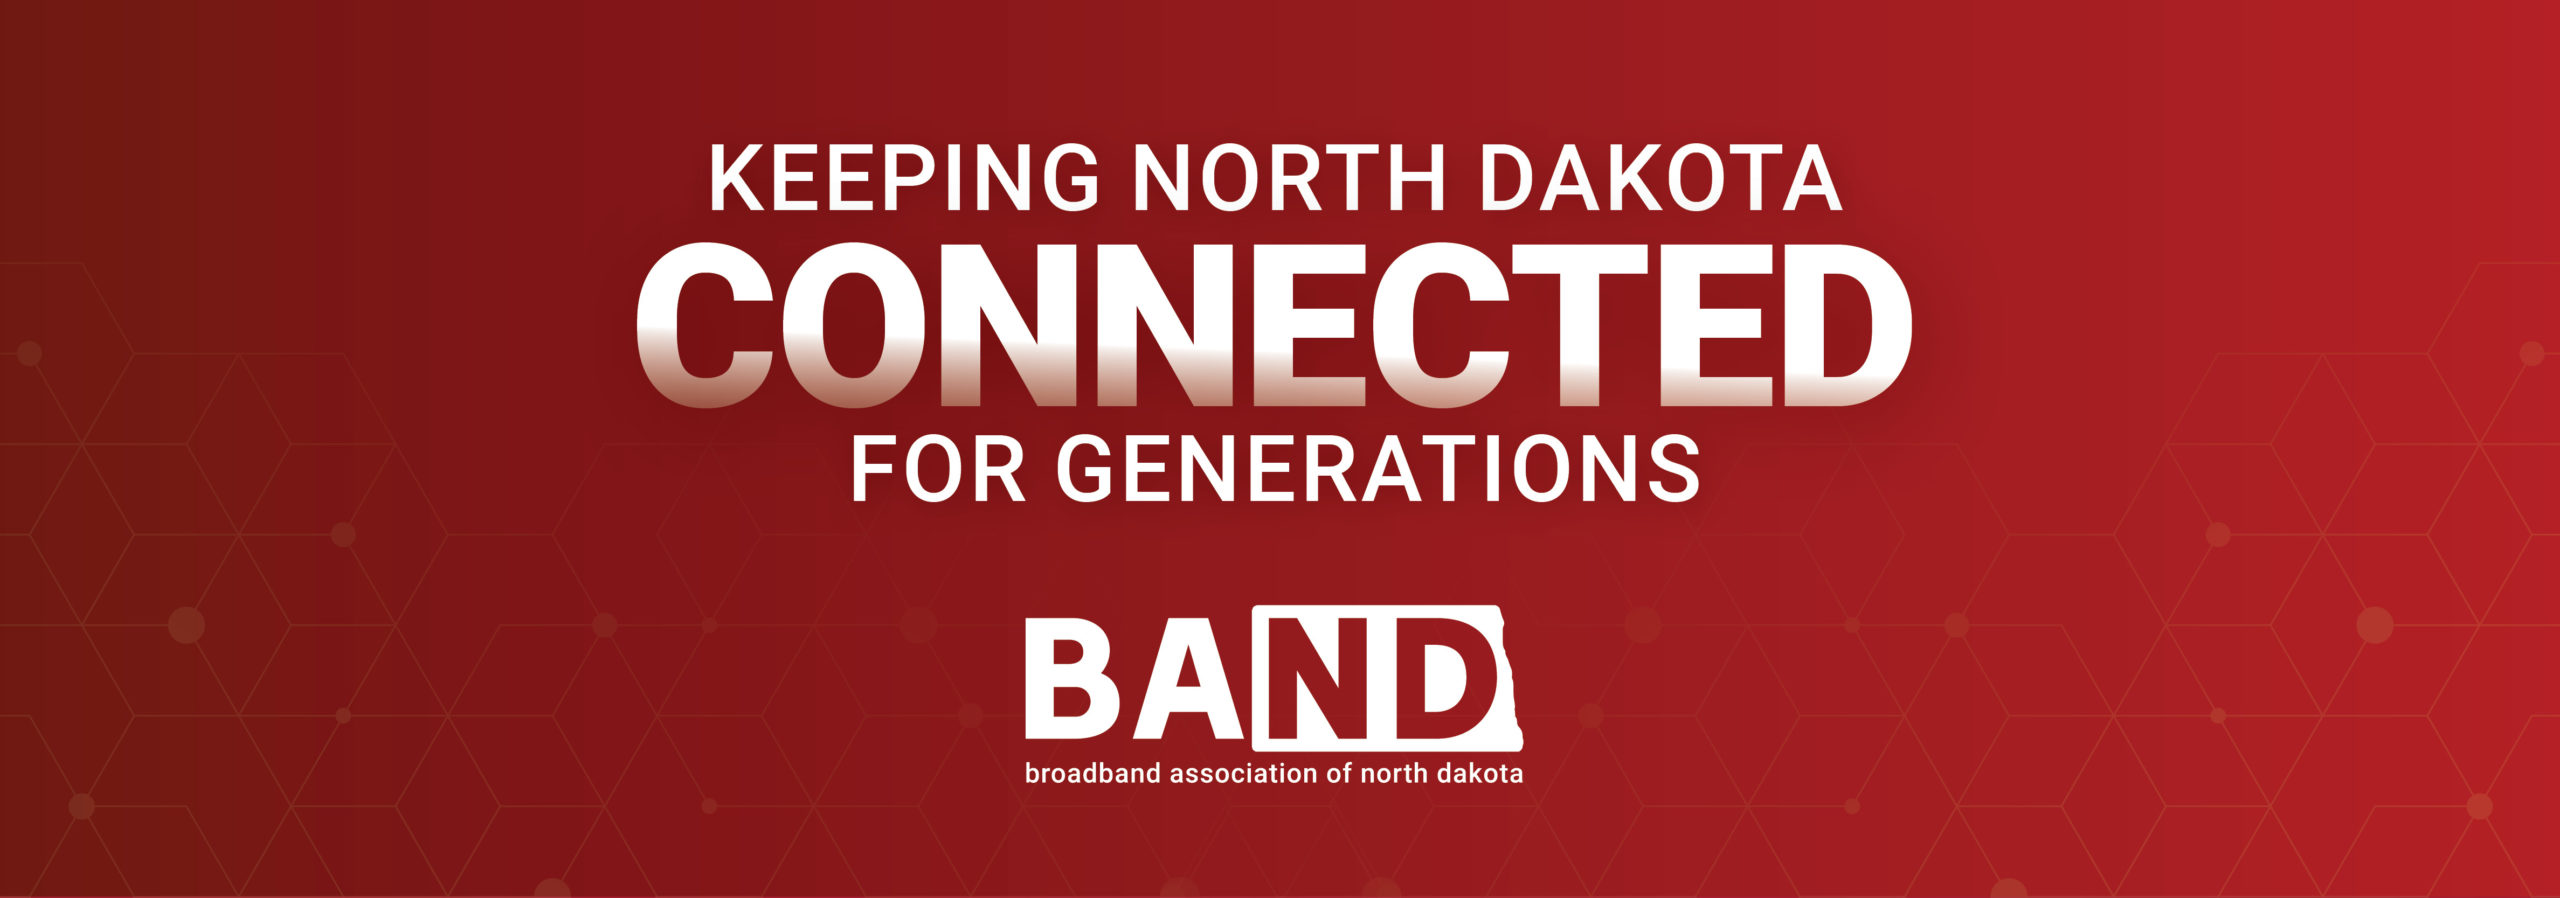 Keeping North Dakota Connected for Generations